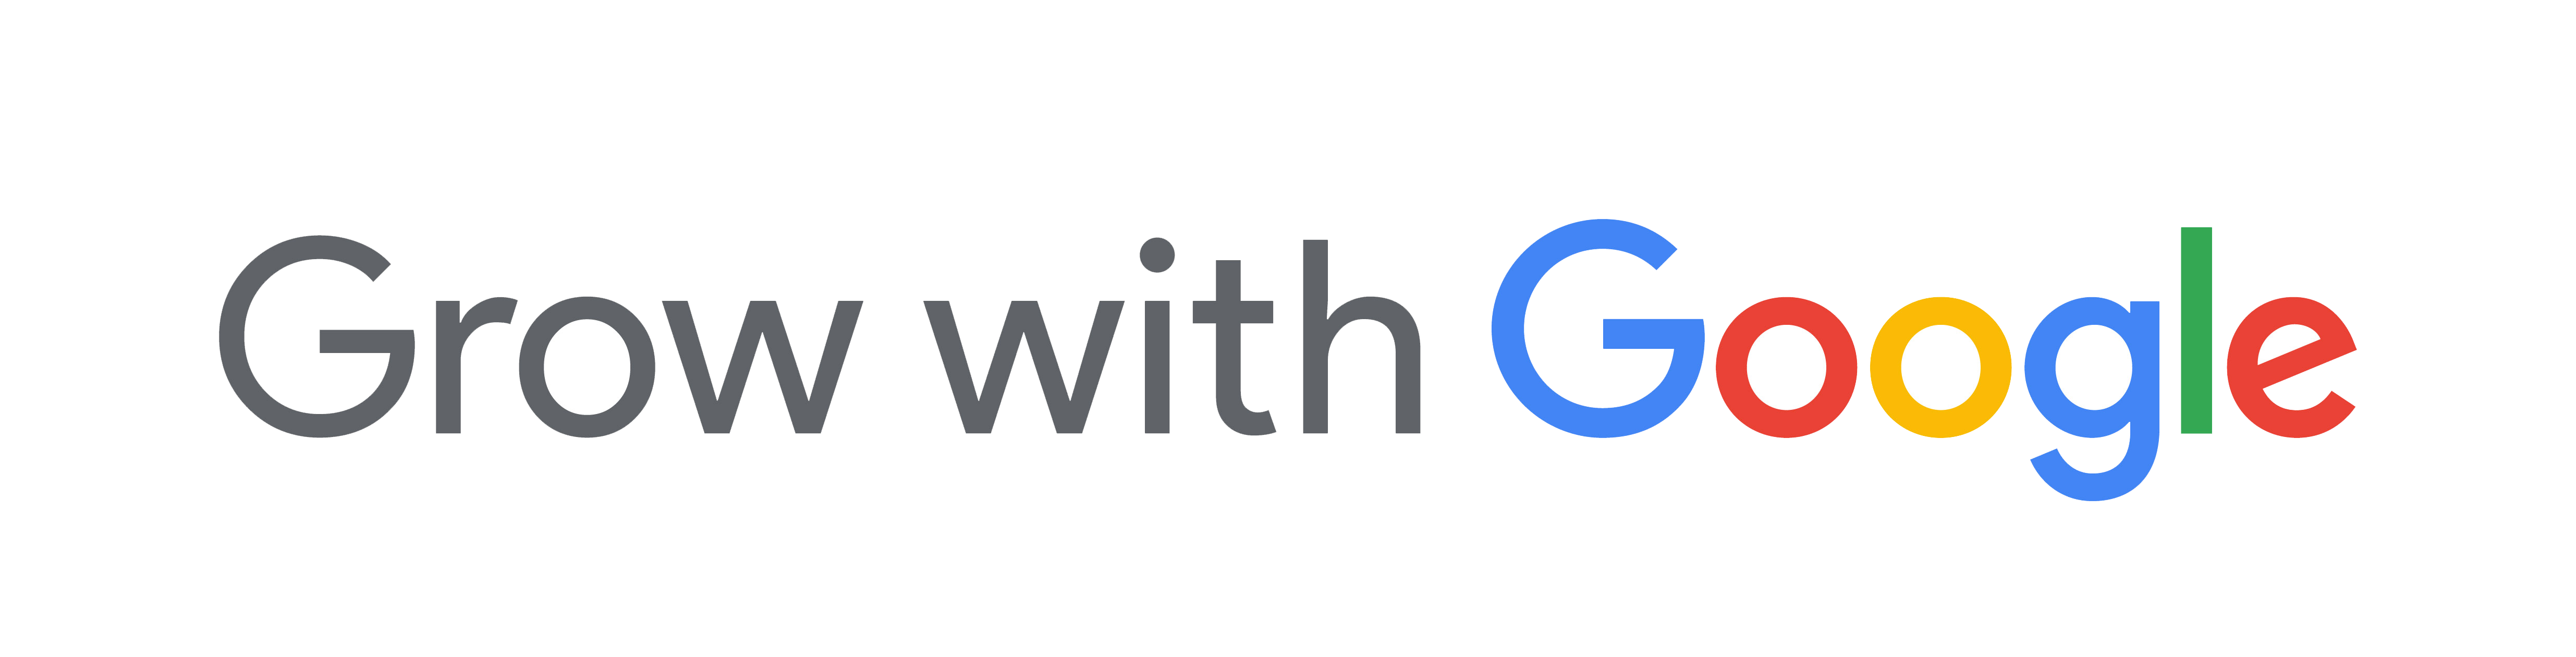 grow-with-google-logo